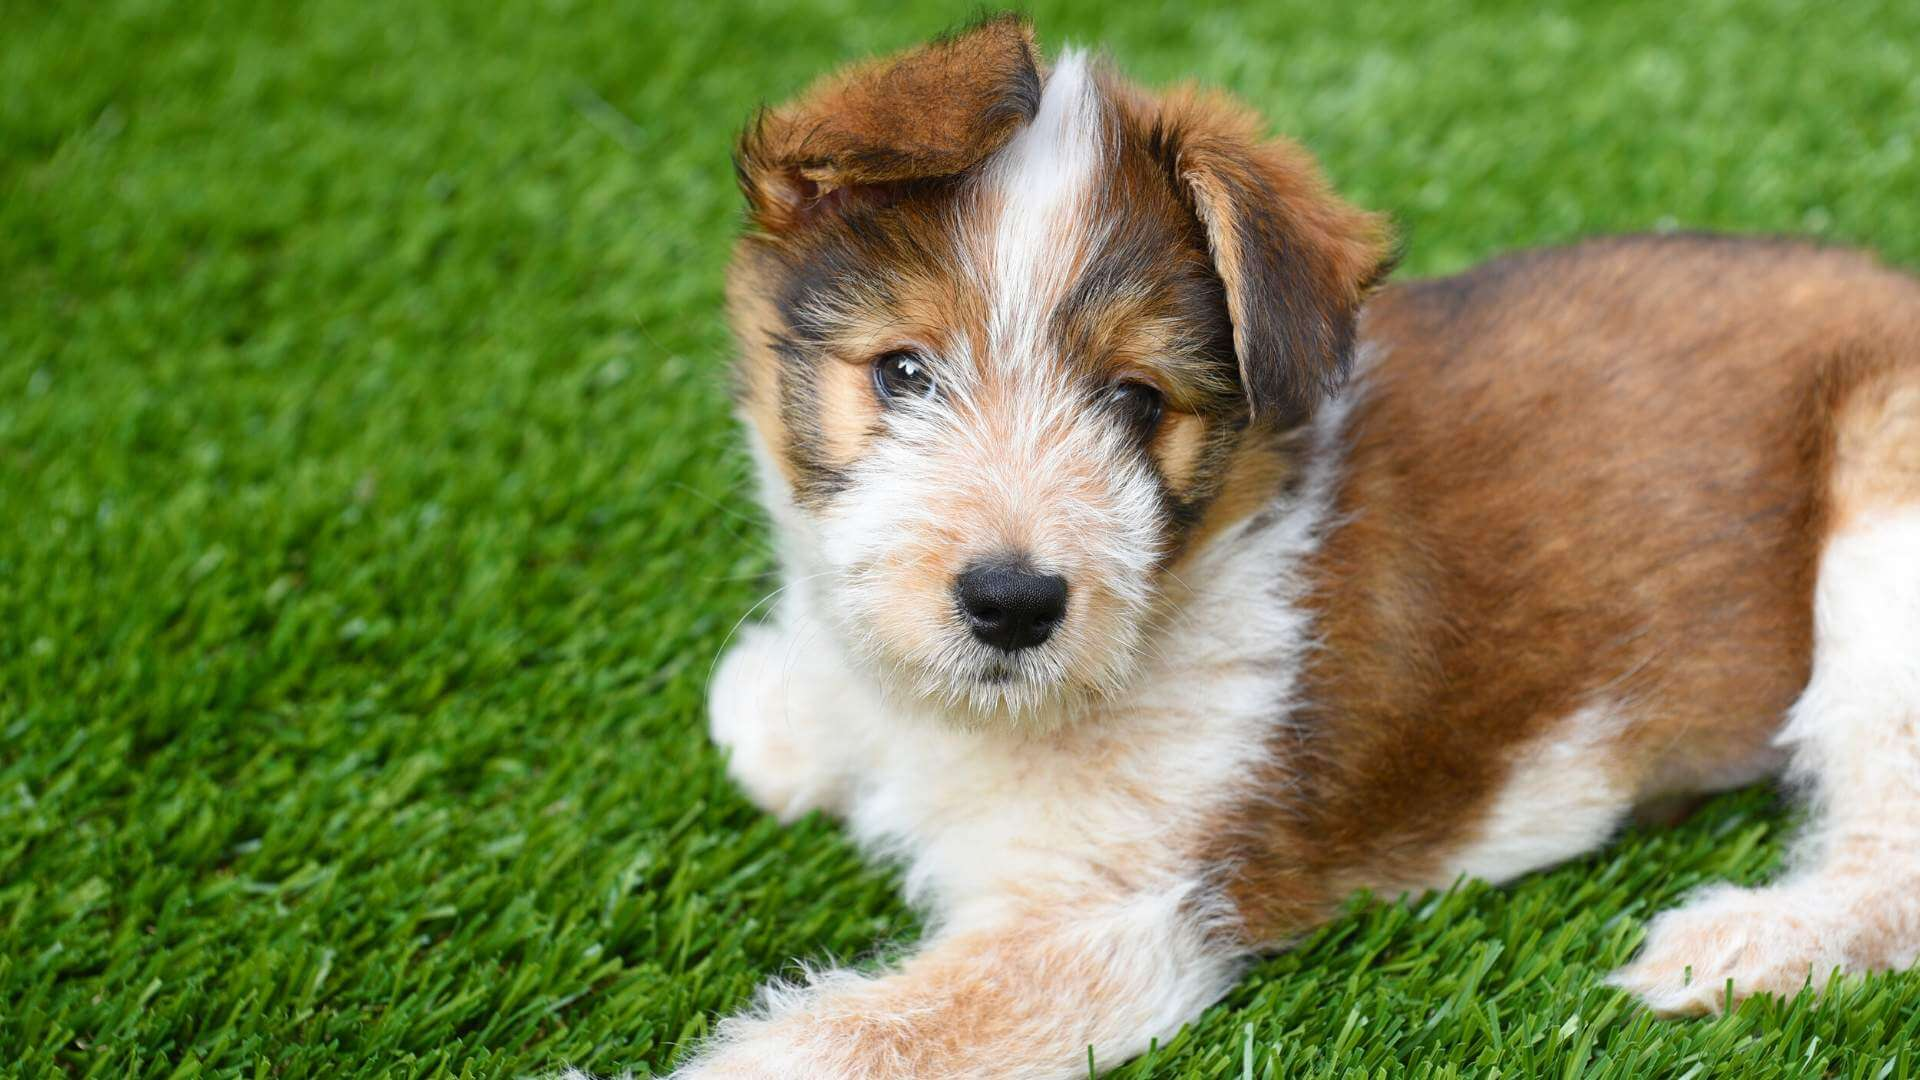 100% Pet-Friendly Artificial Grass for Dogs